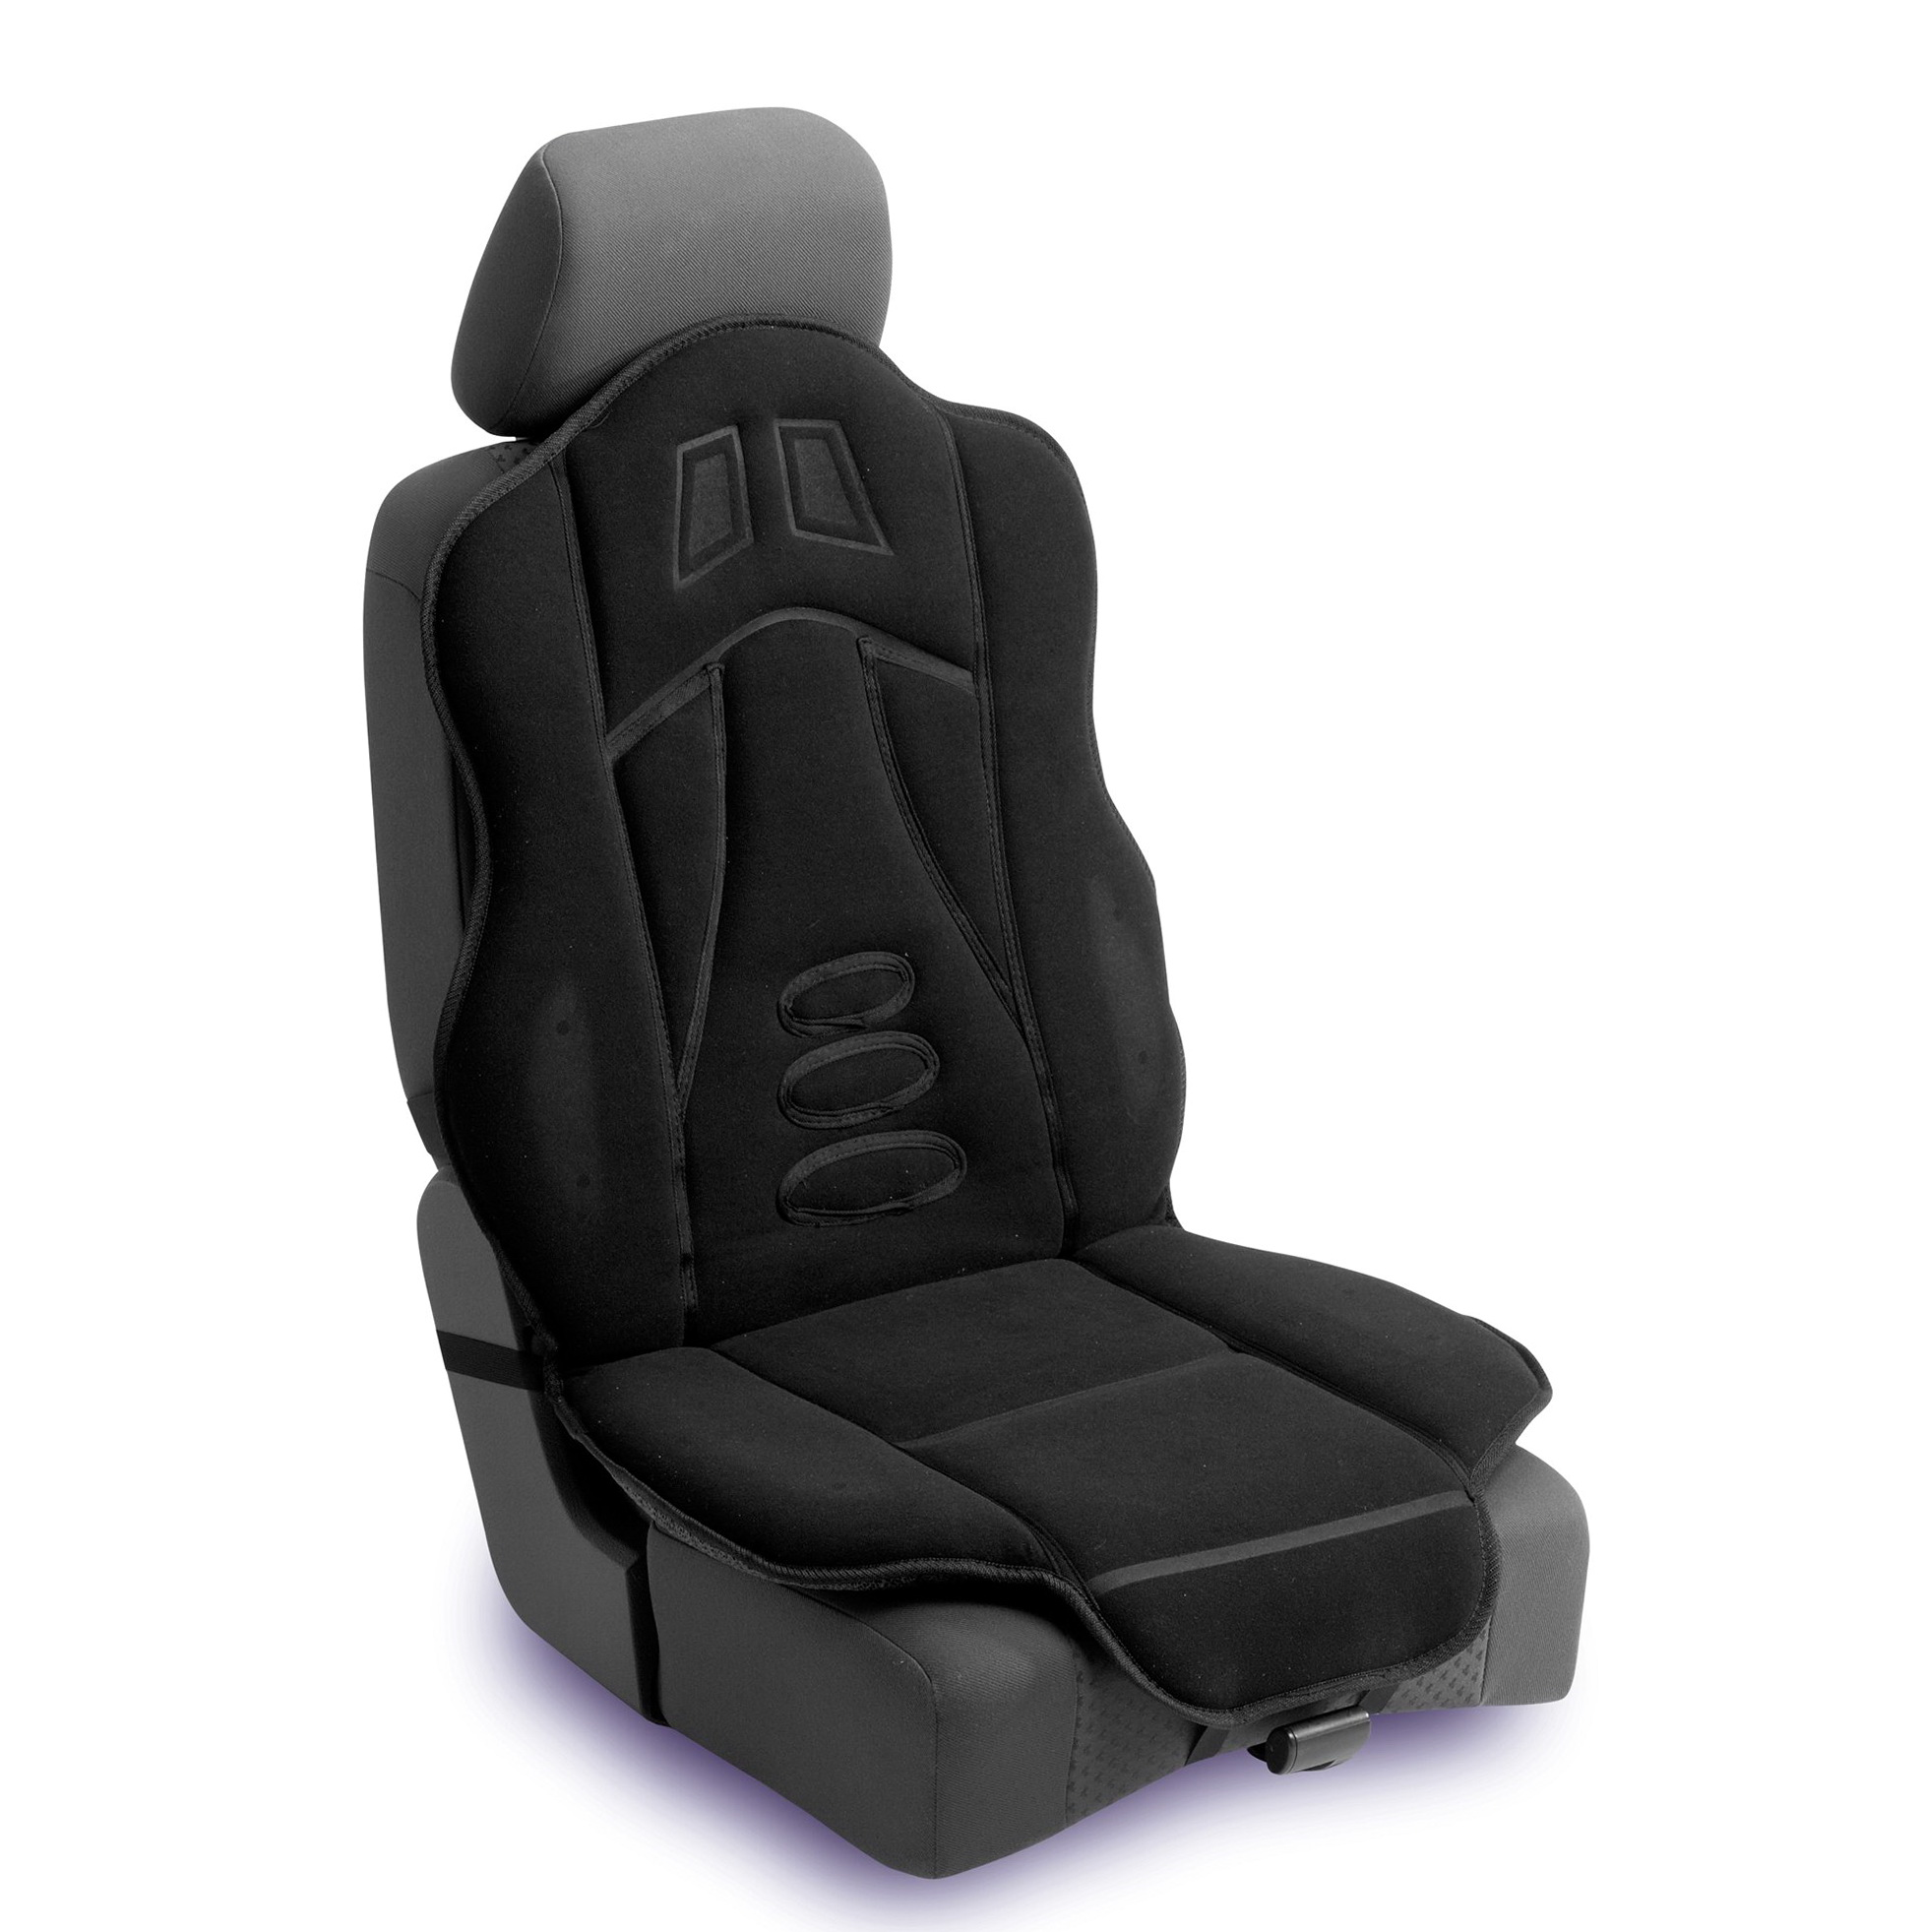 ergonomic chair back support cushion behind the 2018 car seat home design ideas